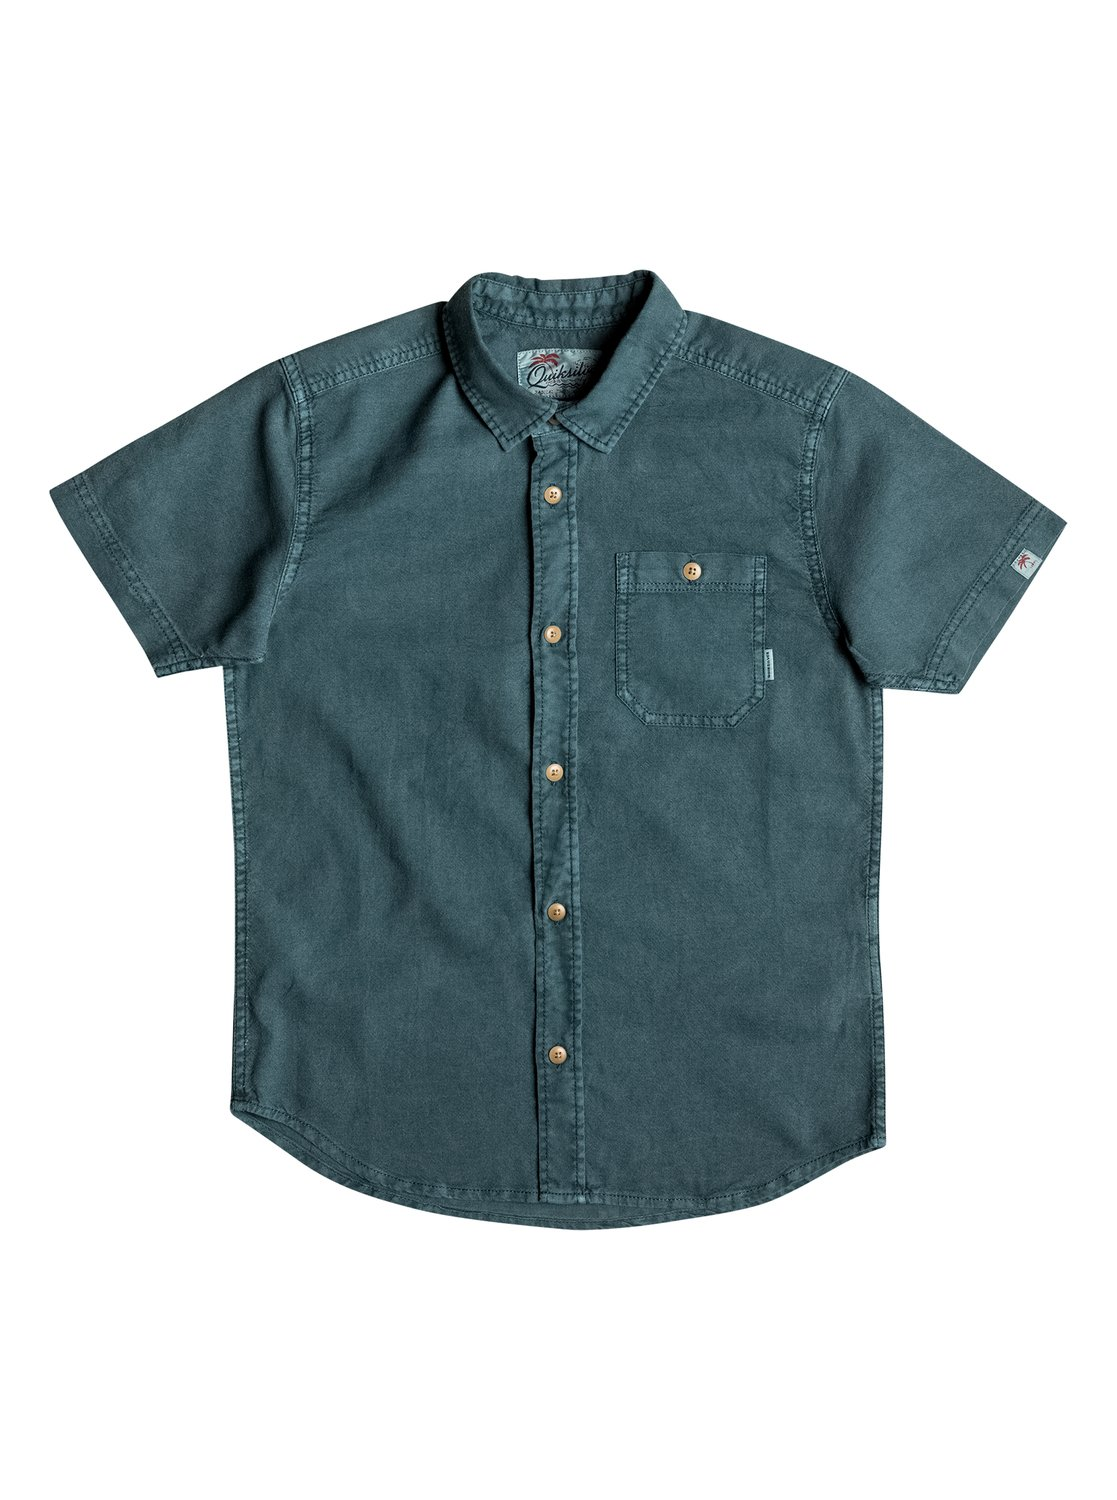 Time Box - Short Sleeve Shirt<br>